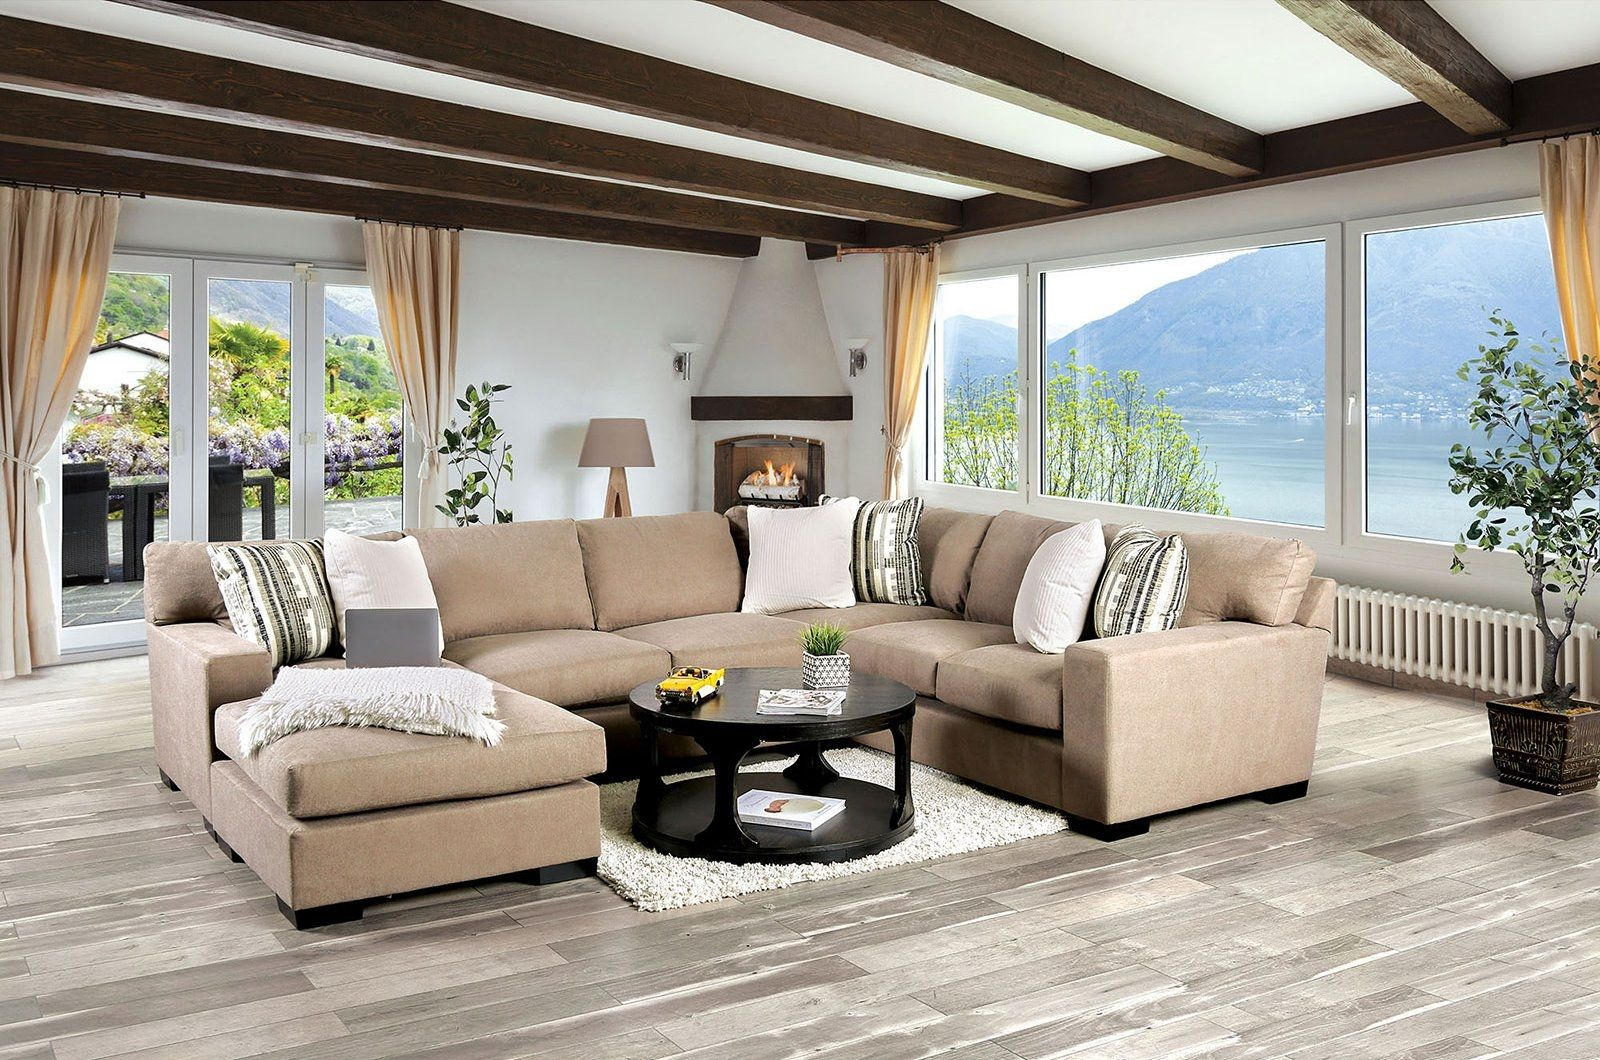 Ferndale Brown Sectional Sofa Sm1286 Furniture Of America Sectional Sofas In 2020 Sectional Sofa Comfy Furniture Furniture Of America